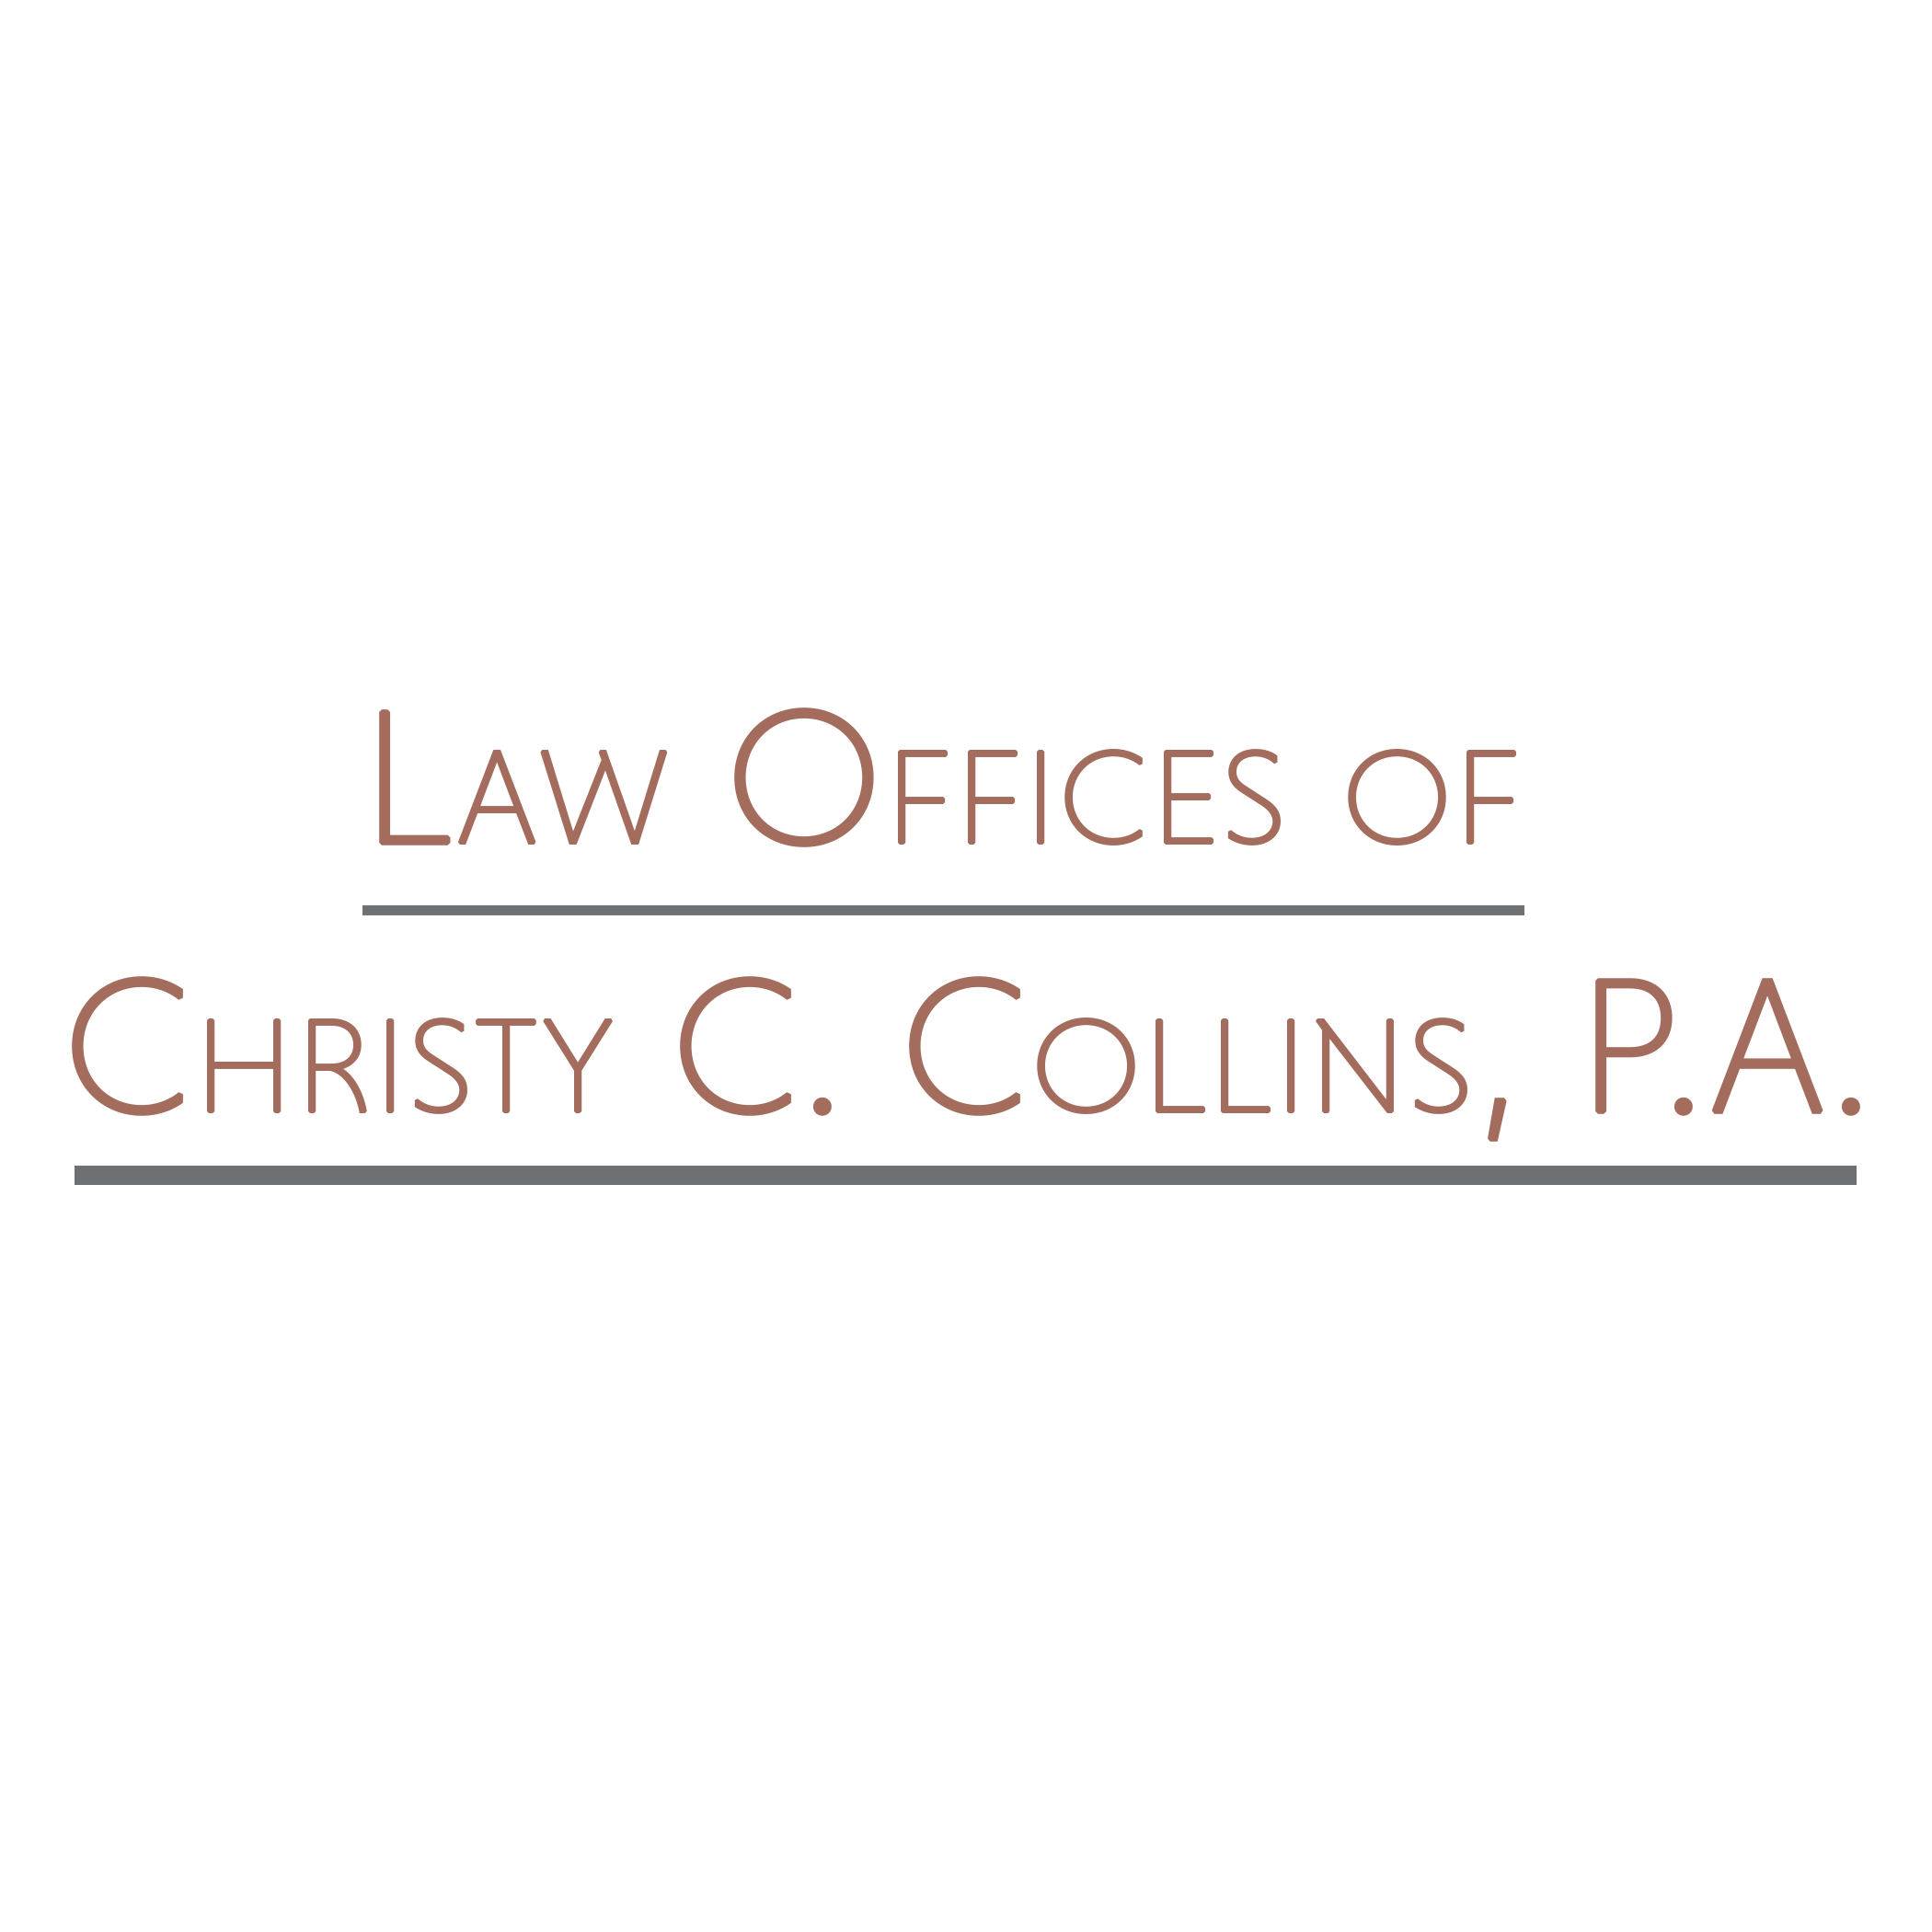 Law Offices of Christy C. Collins, P.A. image 0